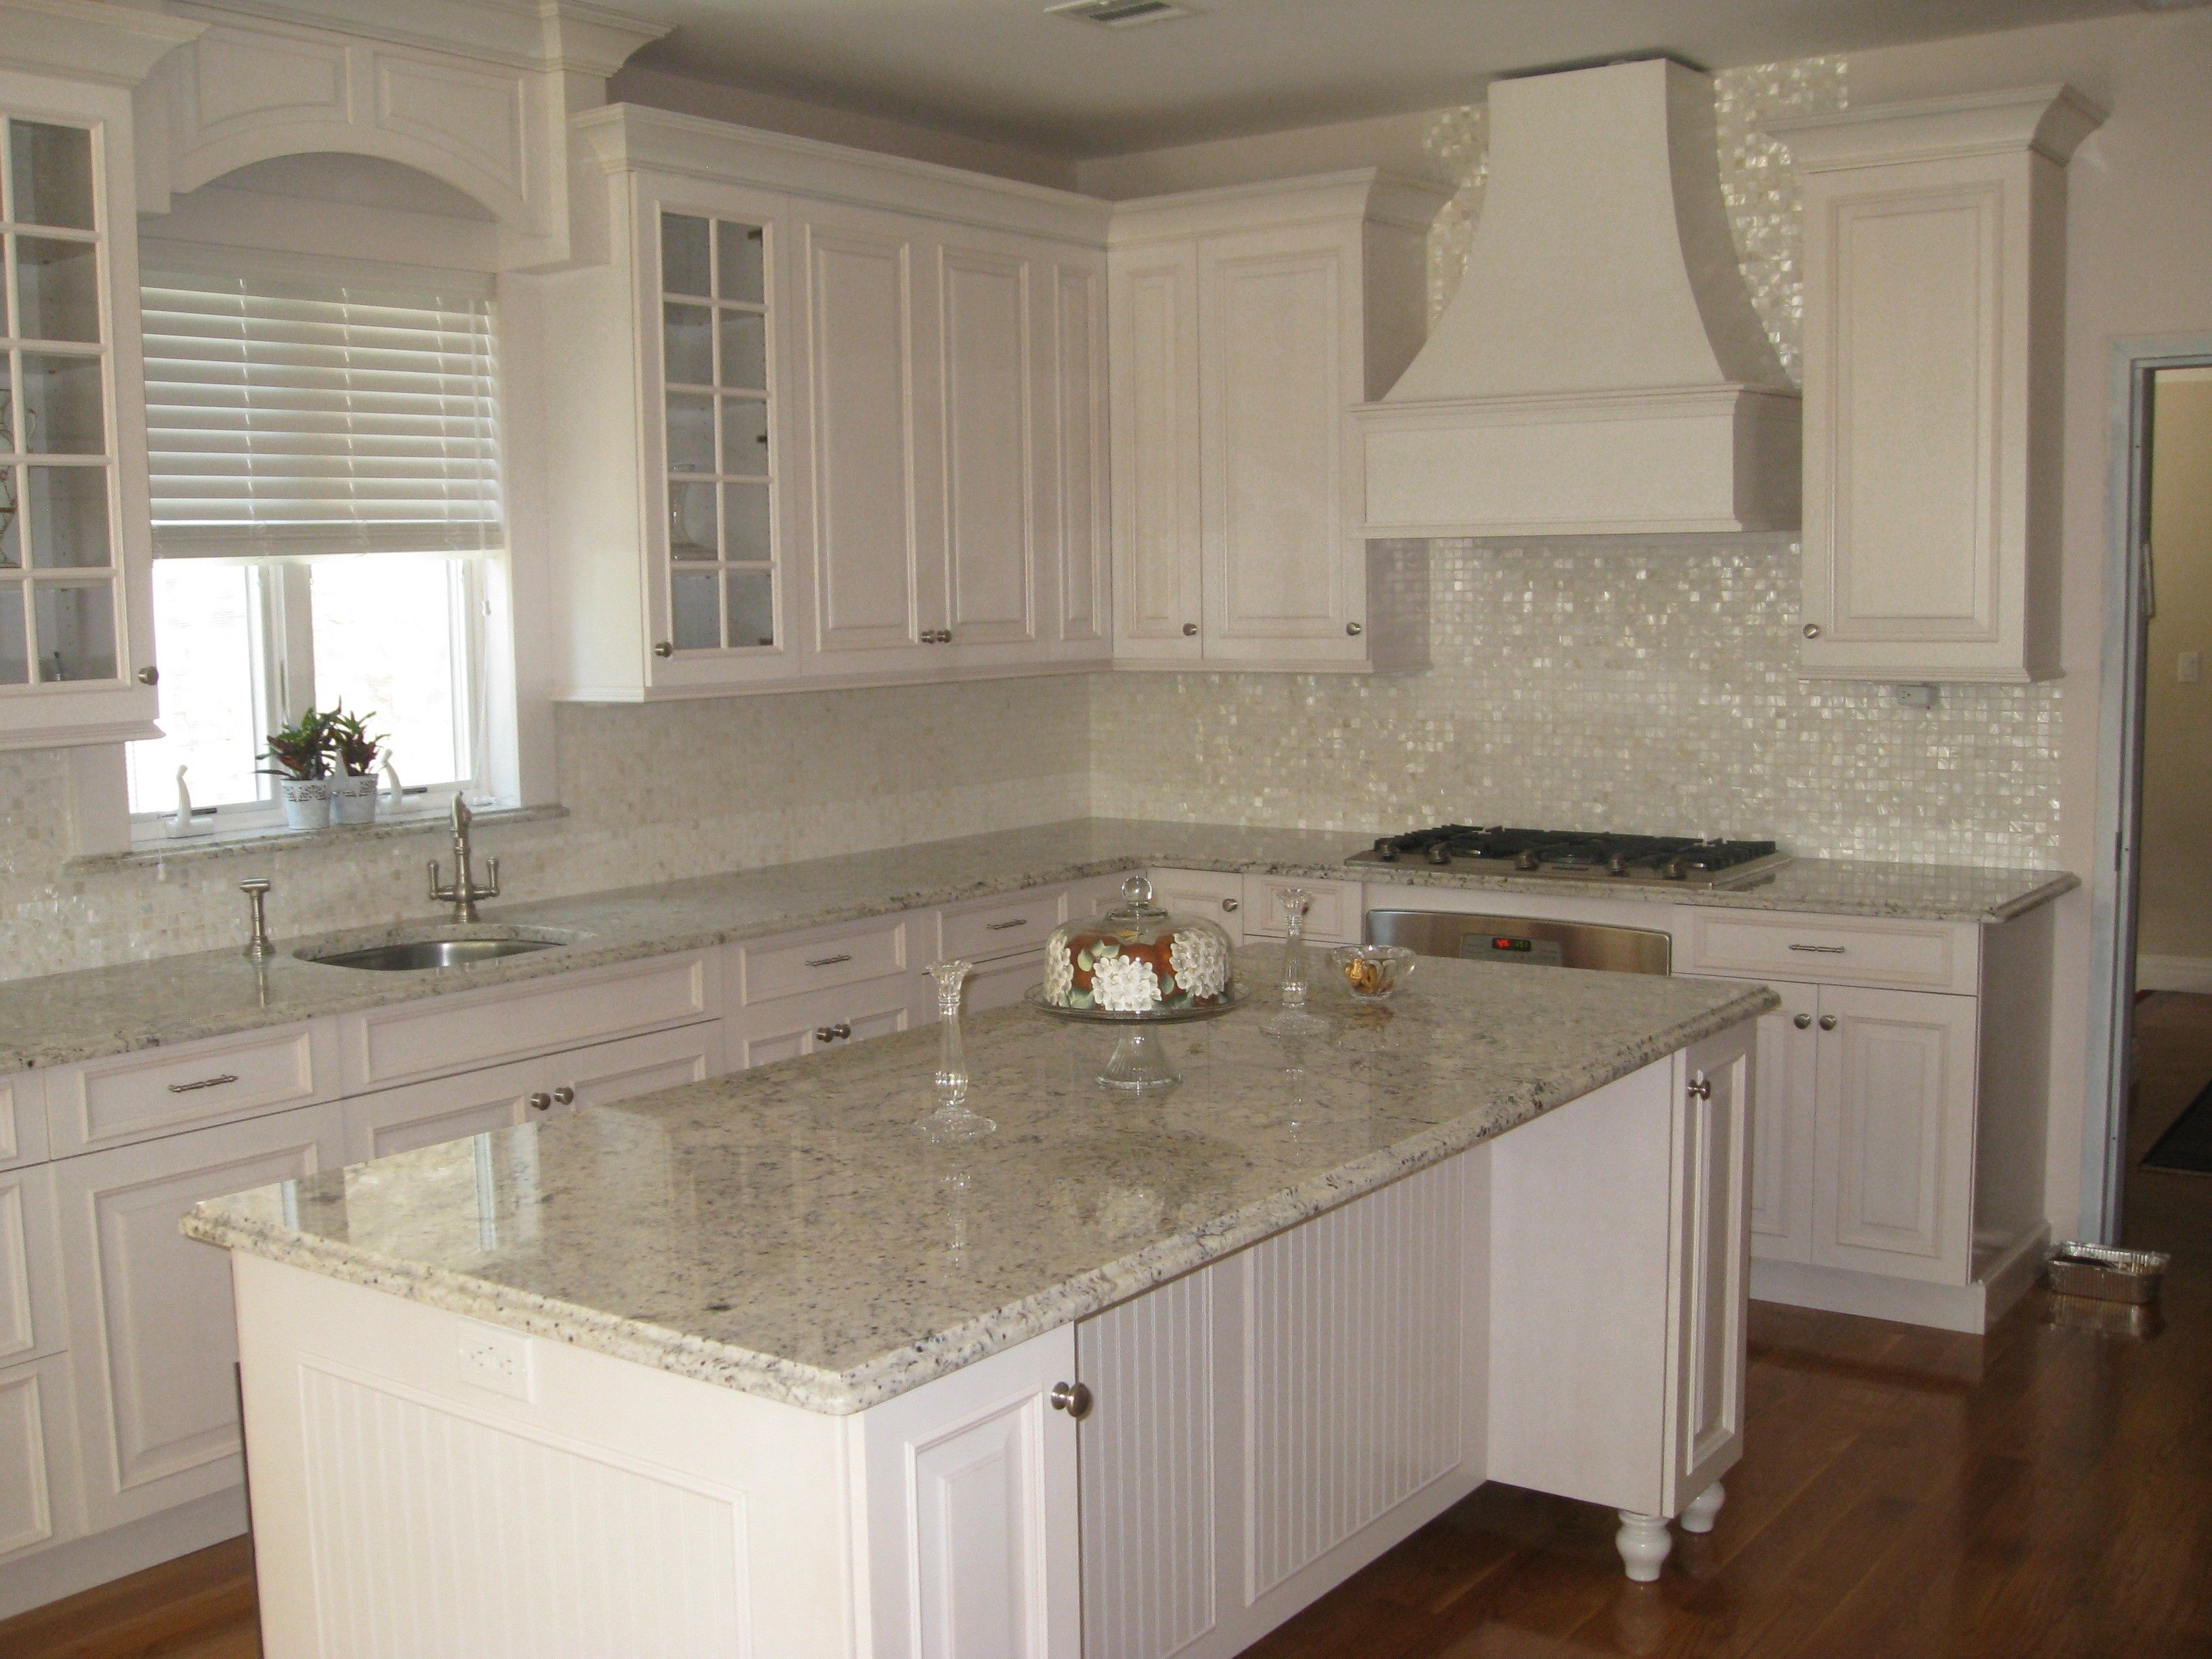 Kitchen Backsplash White Cabinets kitchen backsplash white cabinets | interior home design